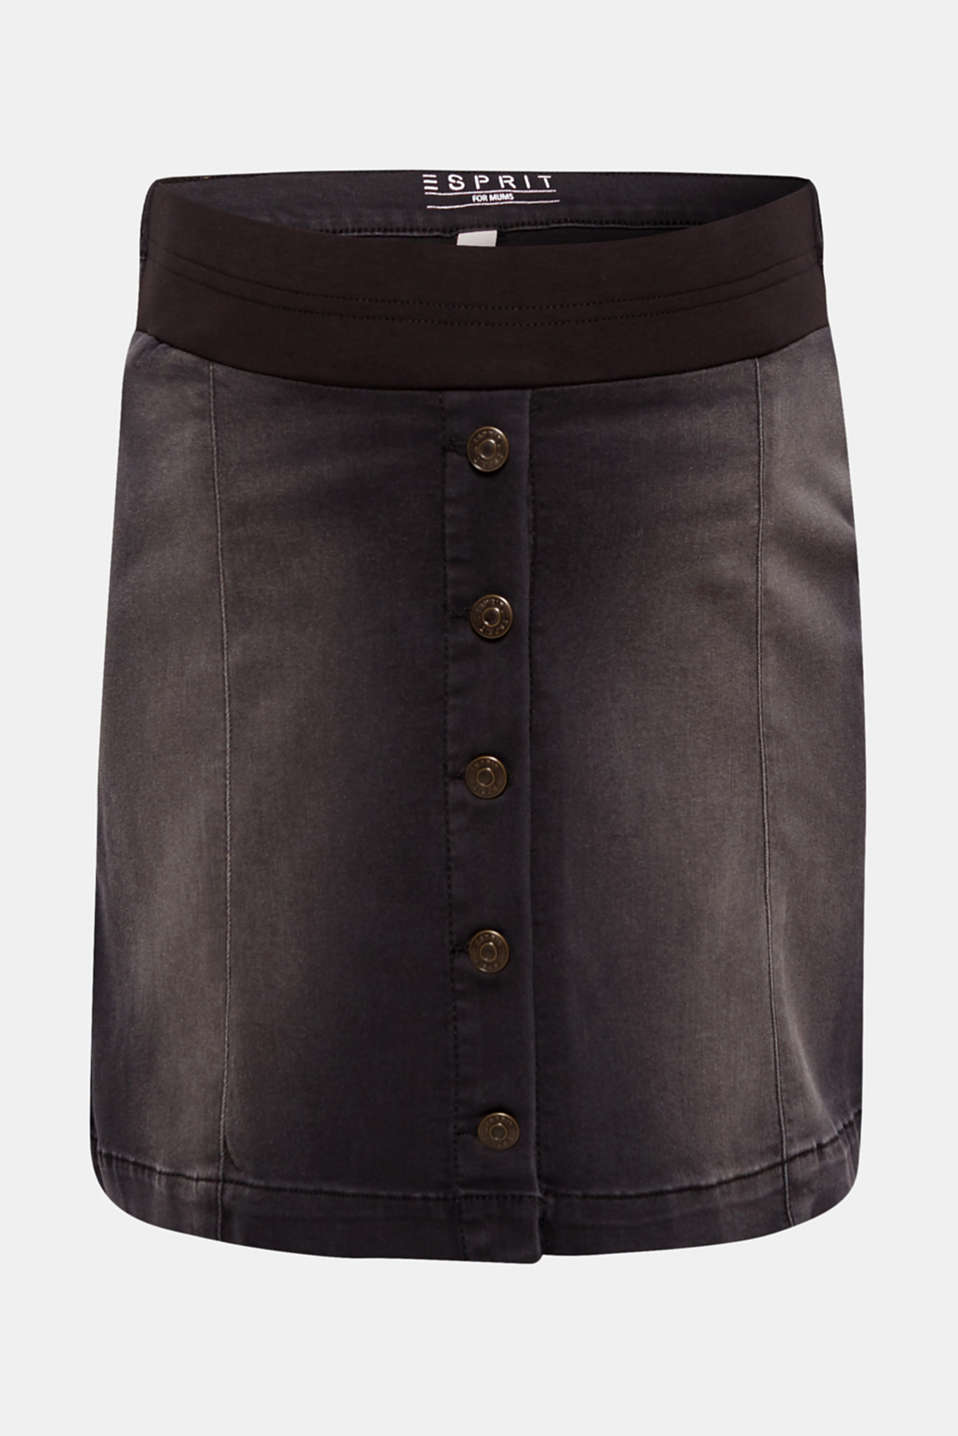 This is how the new style of denim skirts look: flared out in an airy fit and super stretchy, with a decorative button placket on the front